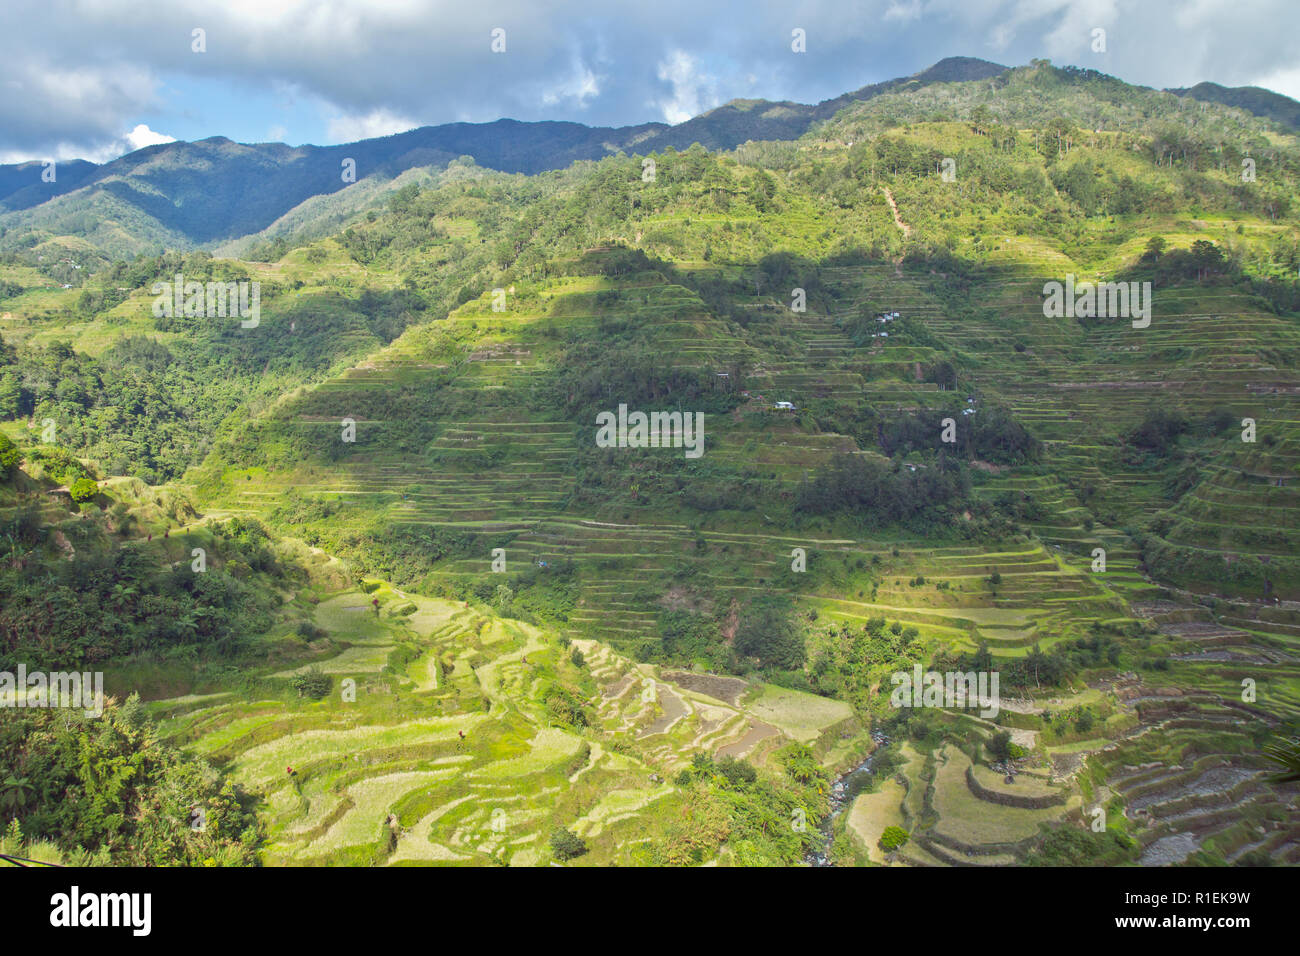 The Banaue Rice Terraces are carved into the mountains of Ifugao in the Philippines by the ancestors of the indigenous people. - Stock Image